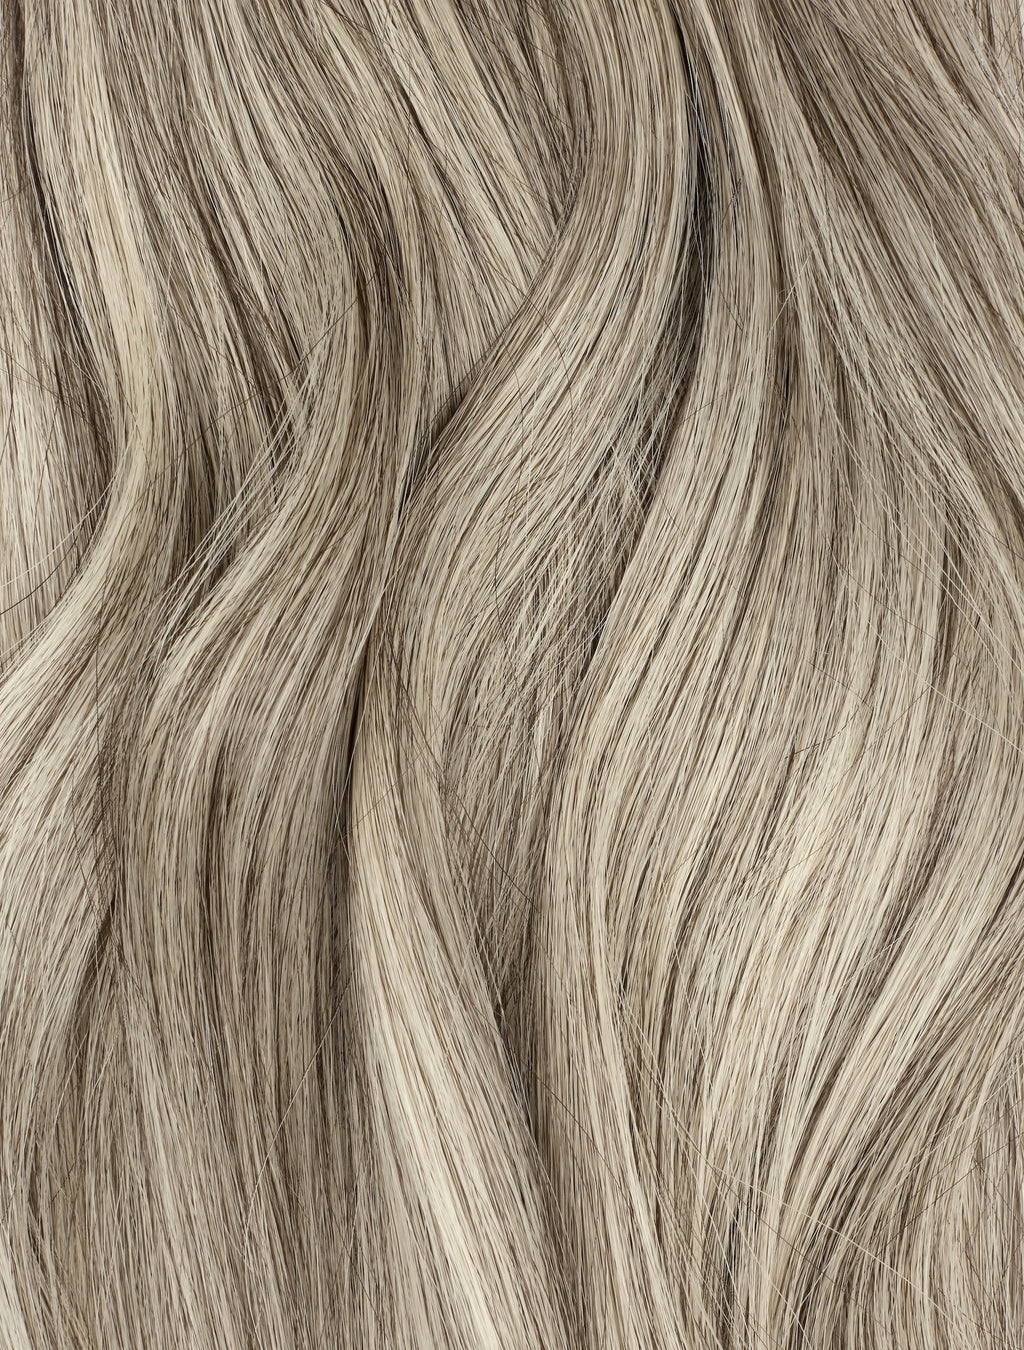 Highlight (Dark Brown #2 / White Blonde #60B) Tape (50g)